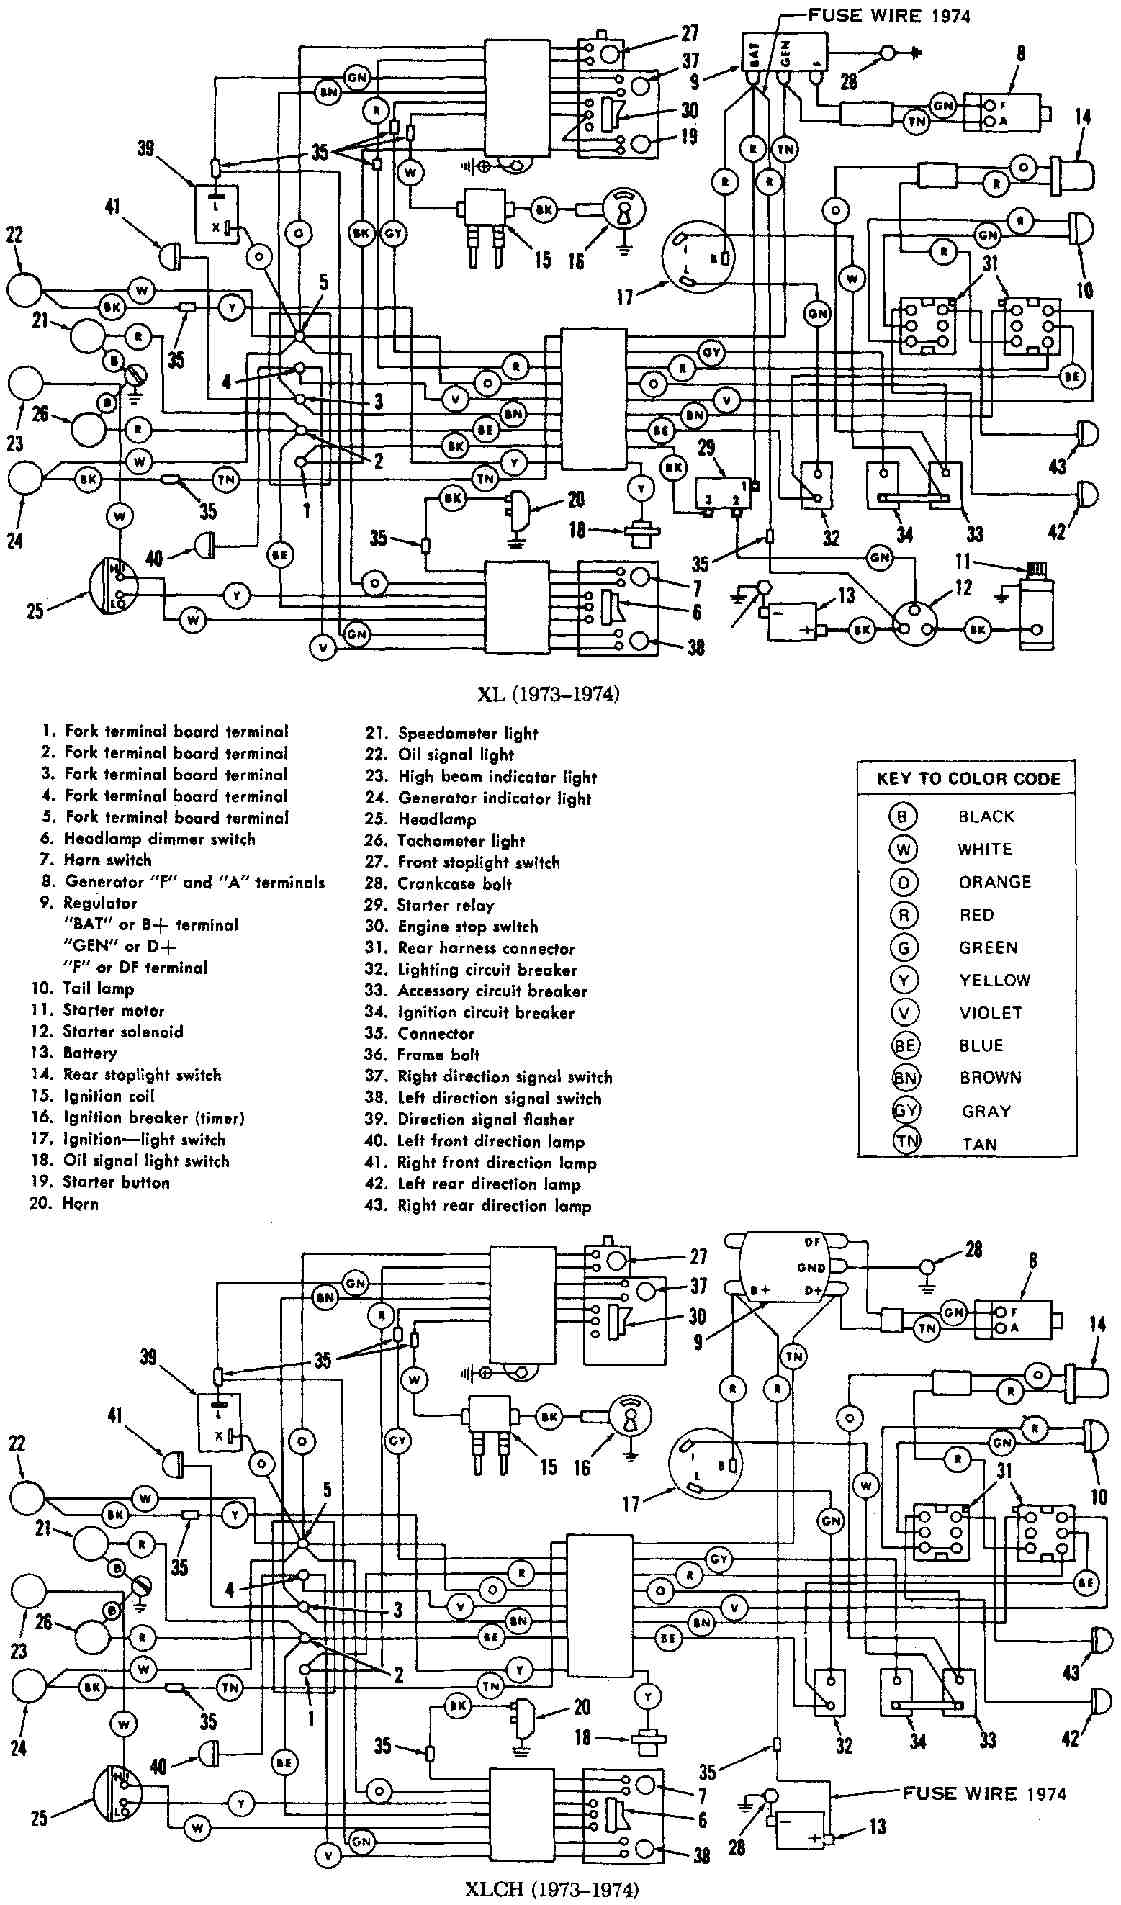 hight resolution of 1981 harley wiring diagram wiring diagram detailed 2006 harley davidson street glide wiring diagram 1981